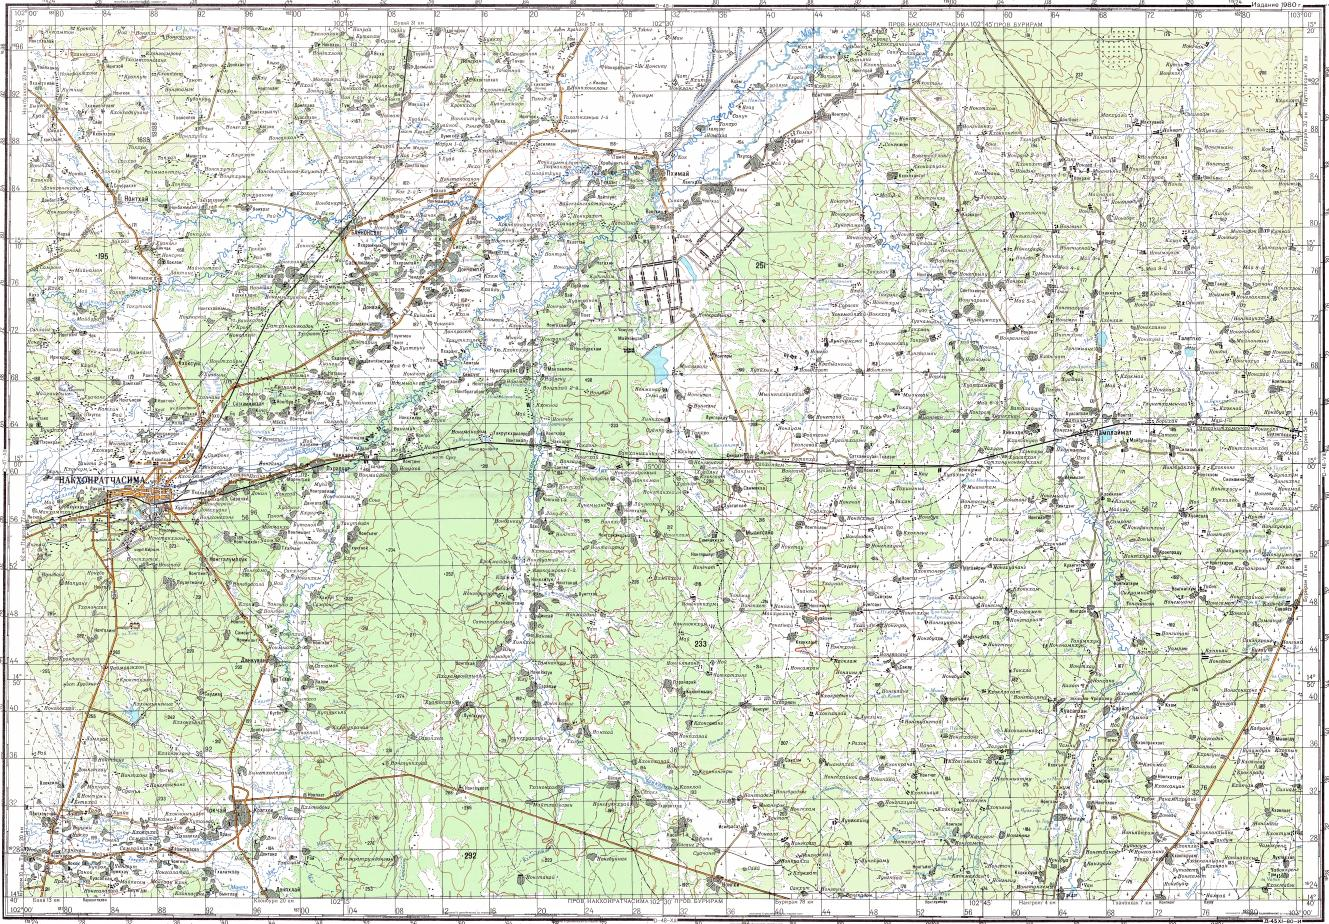 Download topographic map in area of Nakhon Ratchasima Ban Sawai So